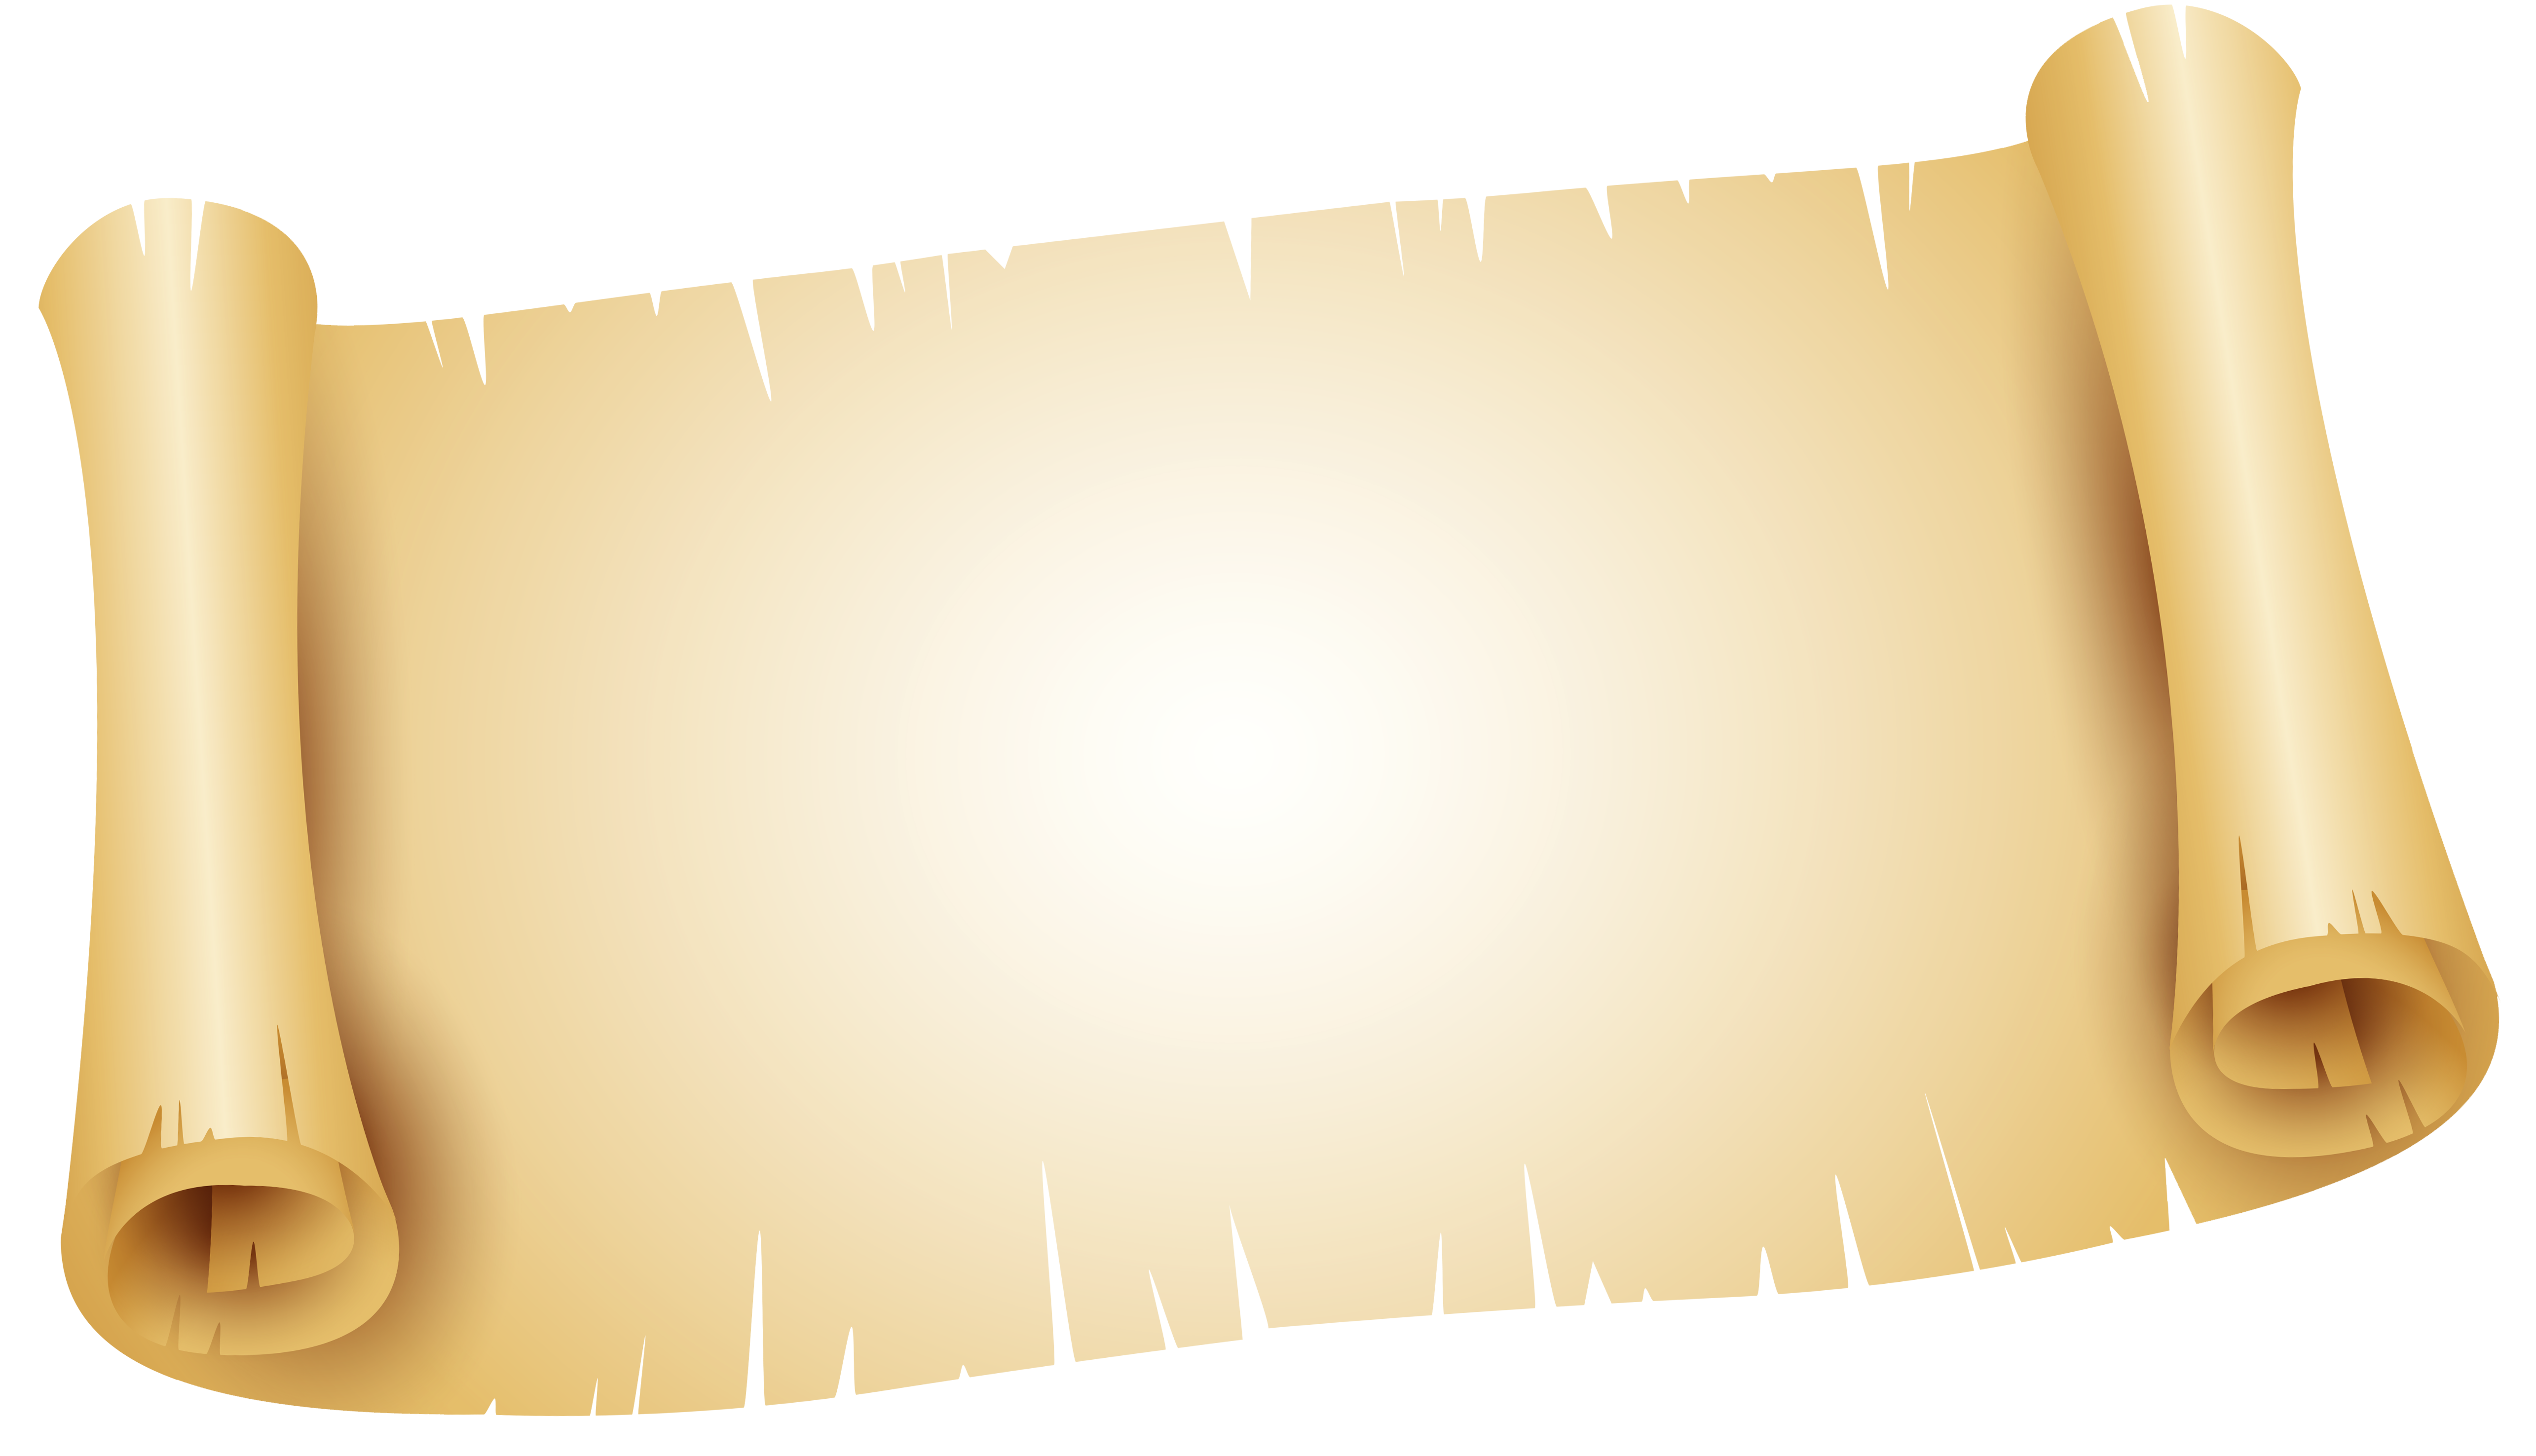 Scrolled paper png image. Scroll clipart ancient scroll